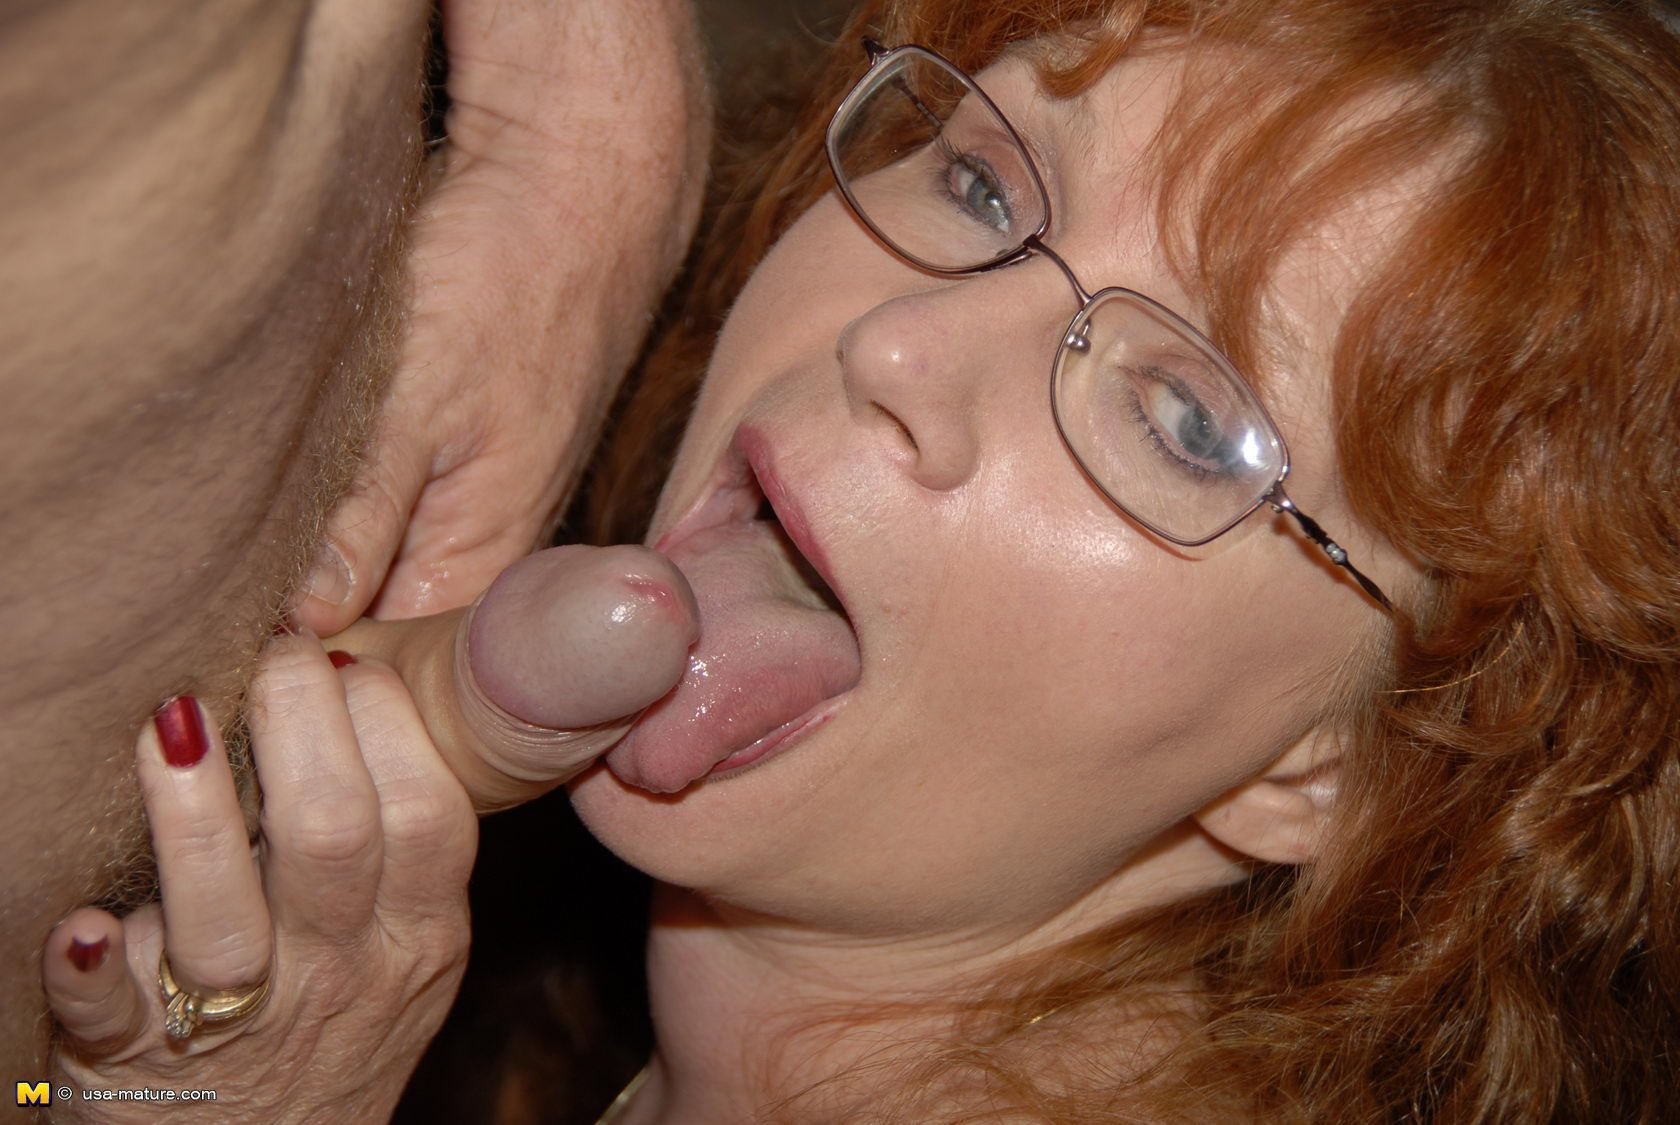 entertaining message redhead babe on hot shemale giving a nice head sorry, does not